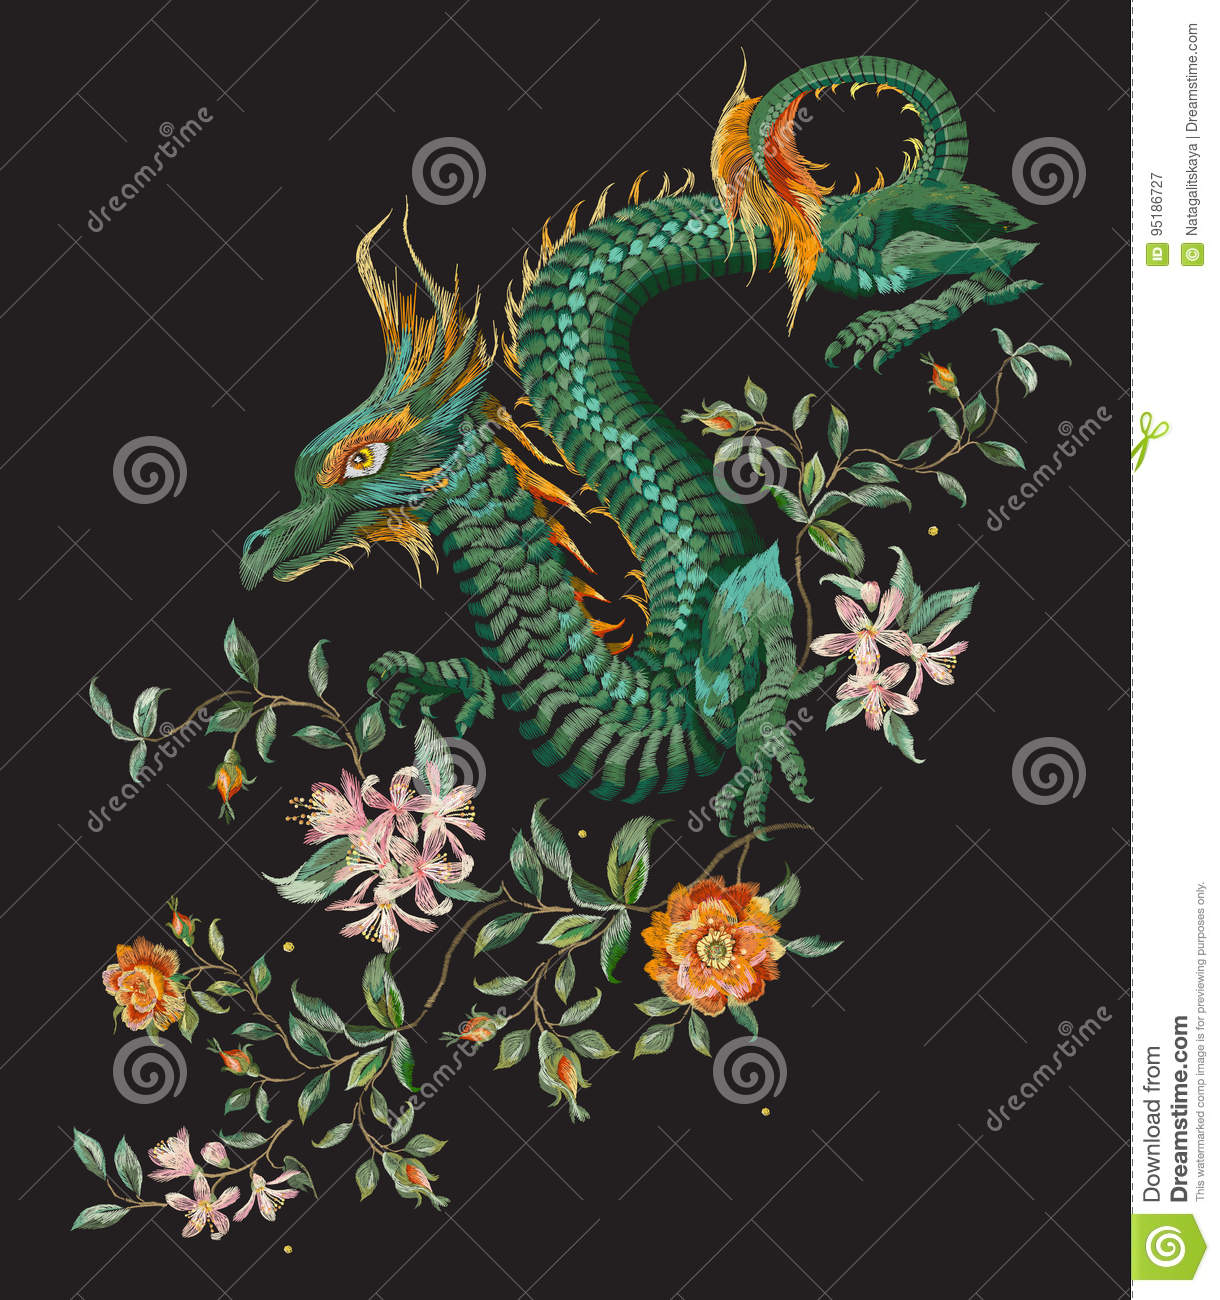 Download Embroidery Oriental Floral Pattern With Green Dragon And Gold Ro Stock Vector - Illustration of foliage, gold: 95186727